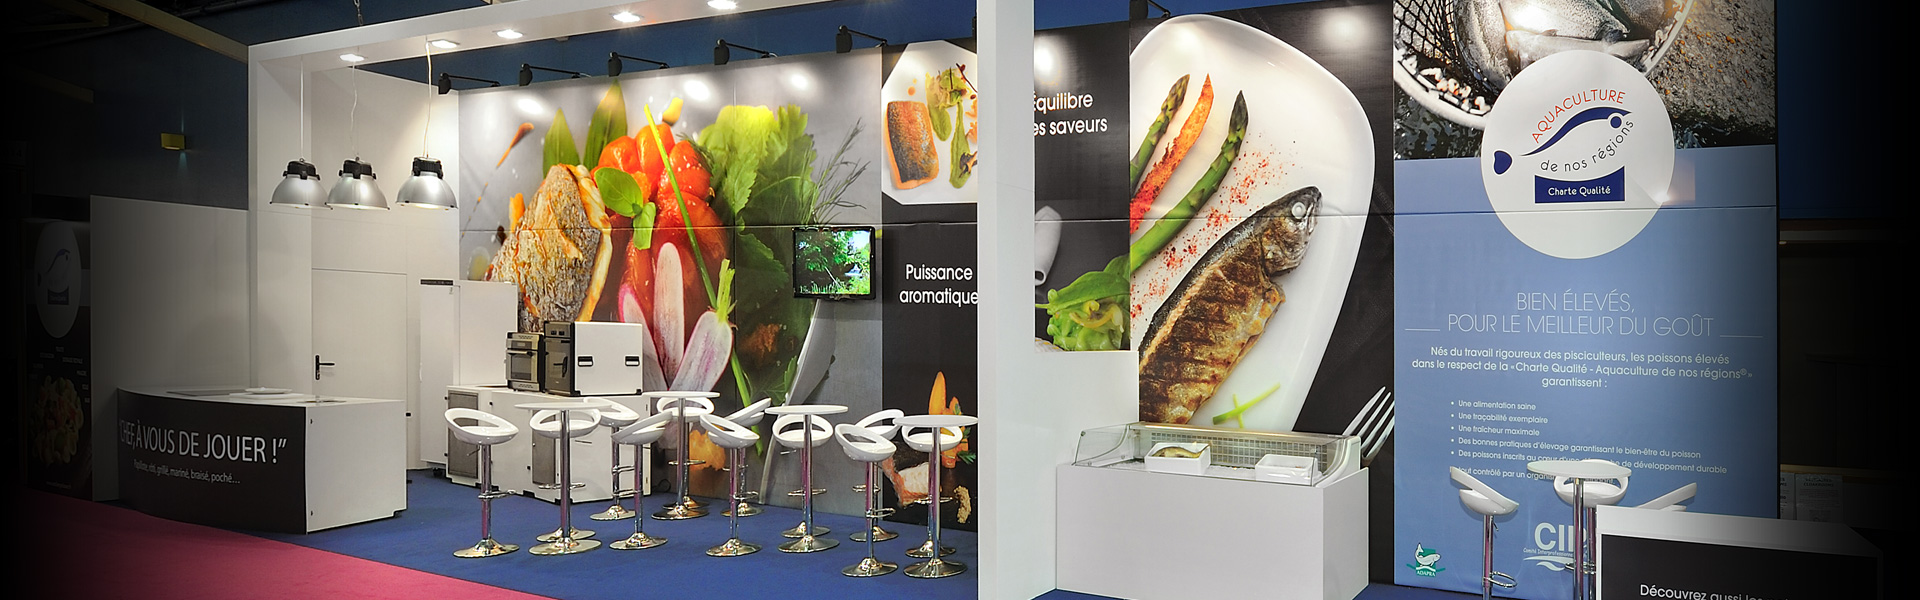 PUBVOLUME-realisations-stand-d'exposition-cipa